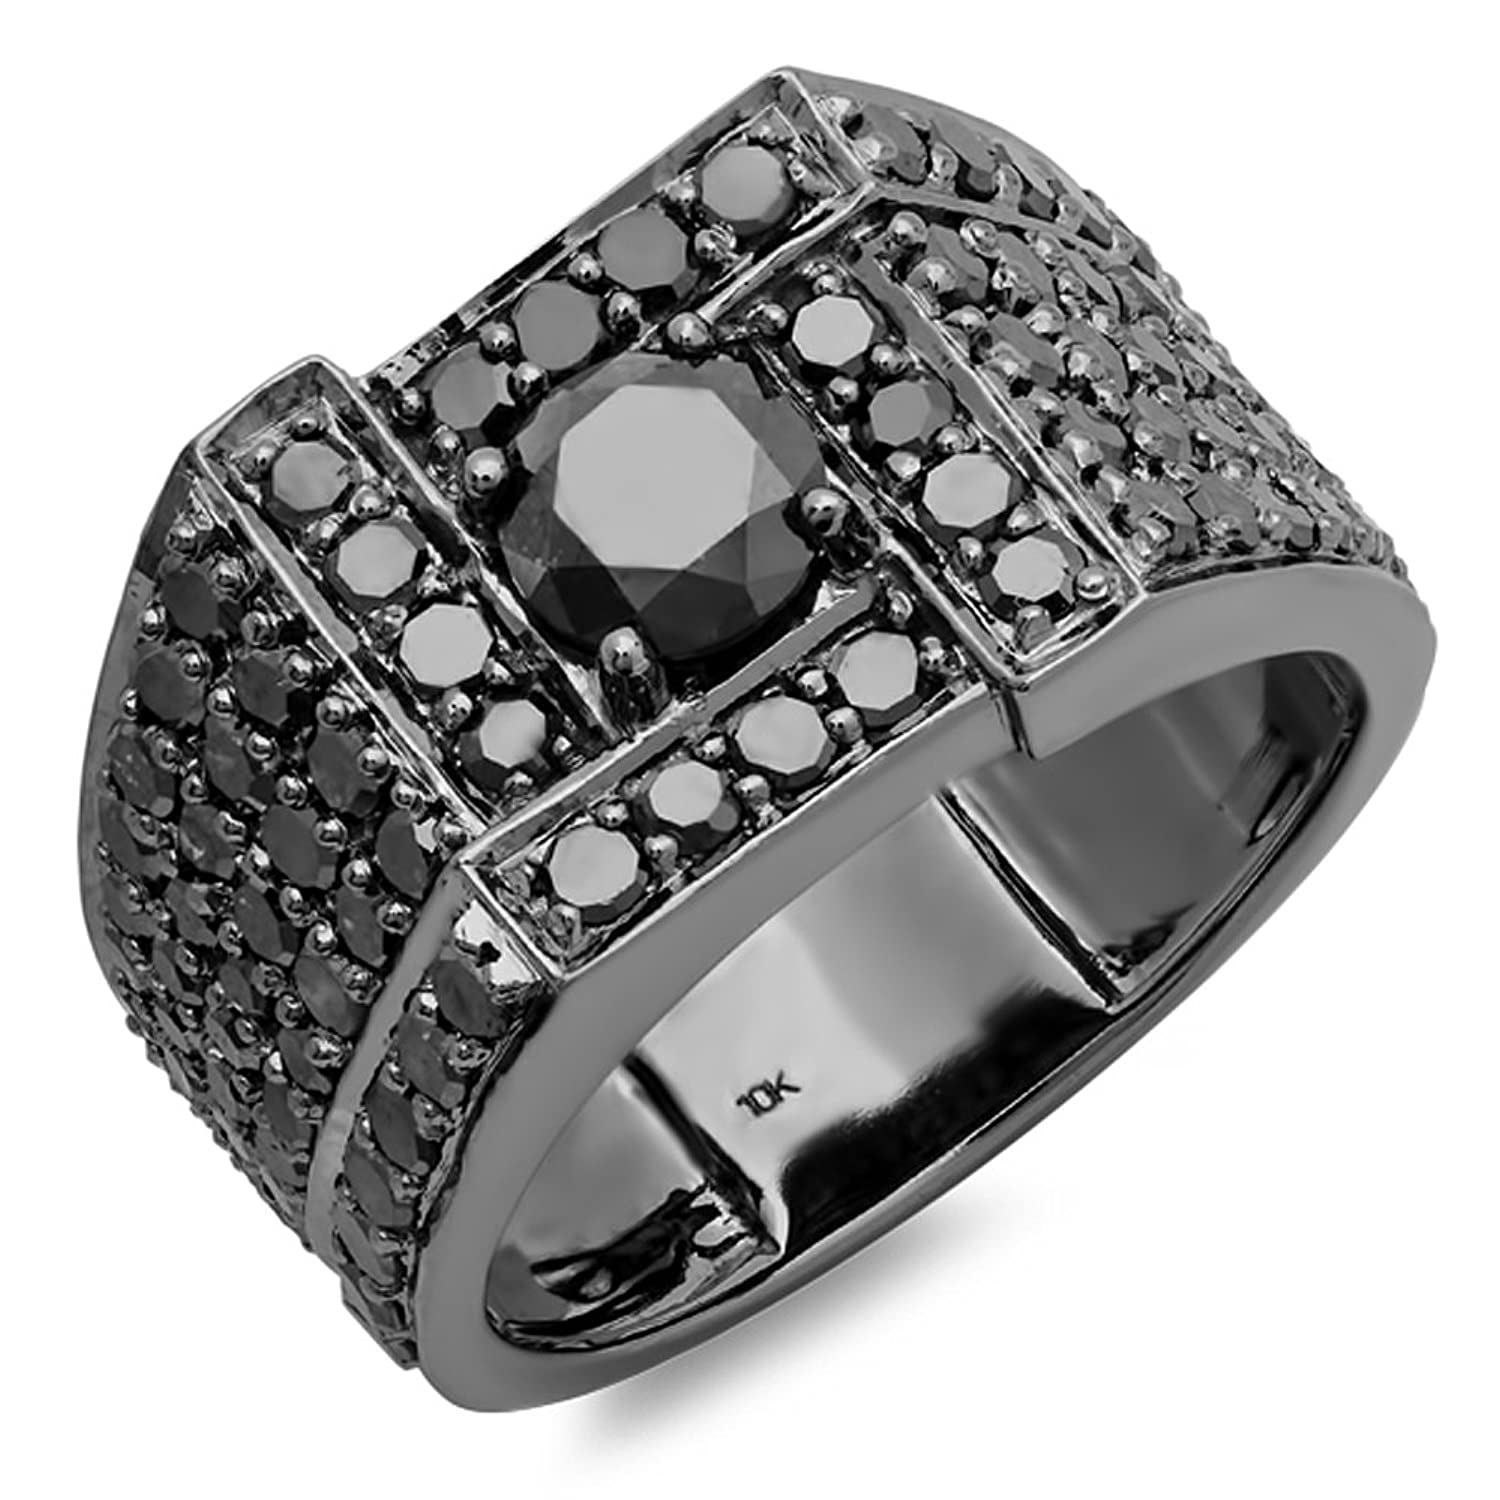 quality gift unique ring wide steel men finger jewelry high stainless mm for products man gagafeel silver rings